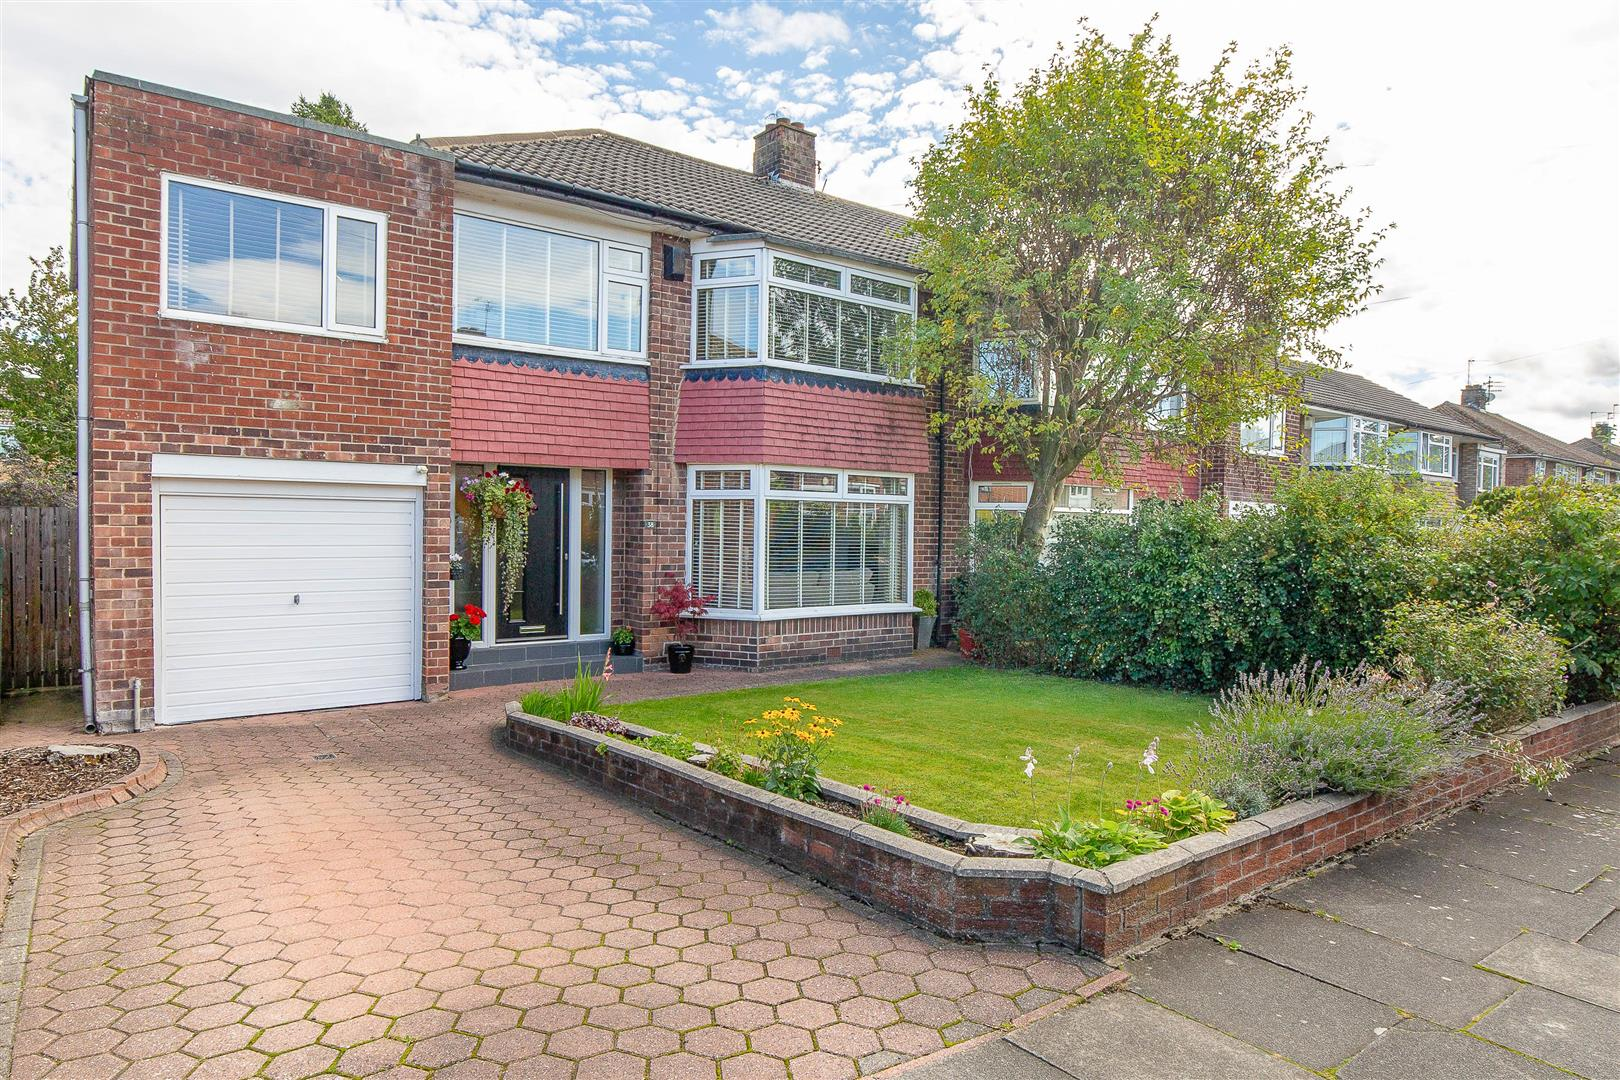 5 bed semi-detached house for sale in Newcastle Upon Tyne, NE3 5TB - Property Image 1